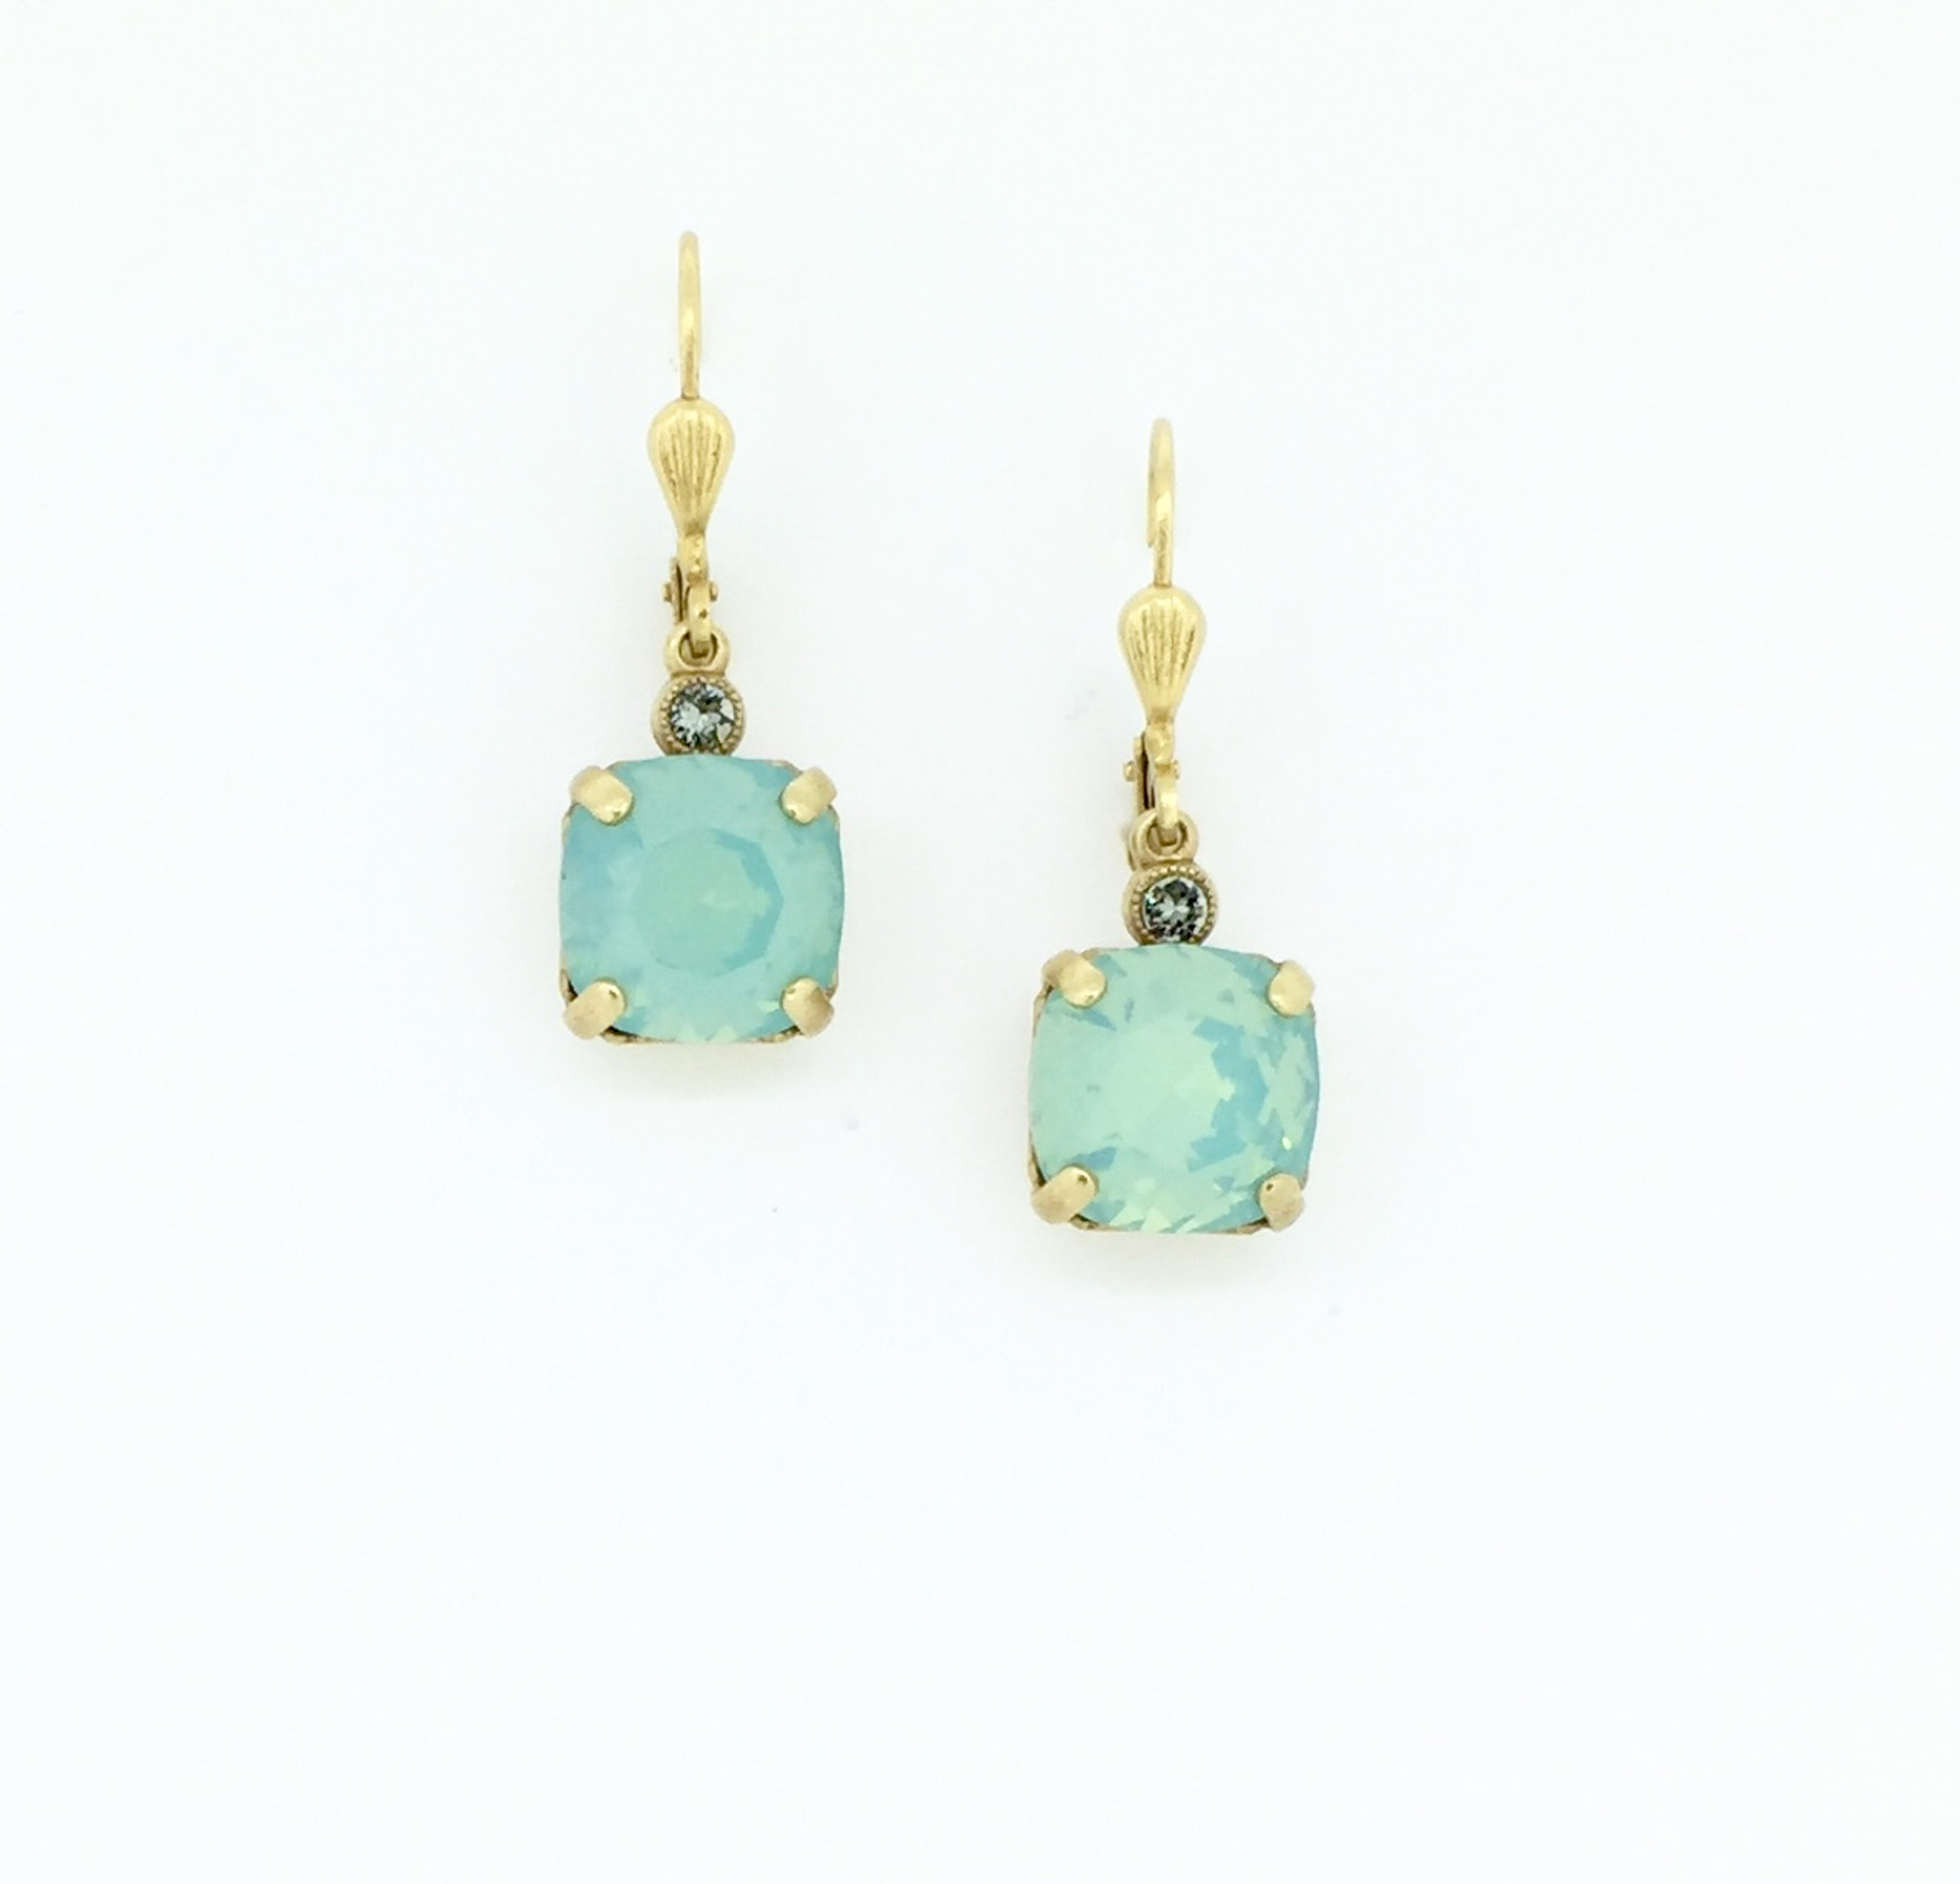 beb58c3952c84 Gold Square Pacific Opal Swarovski Crystal Earrings